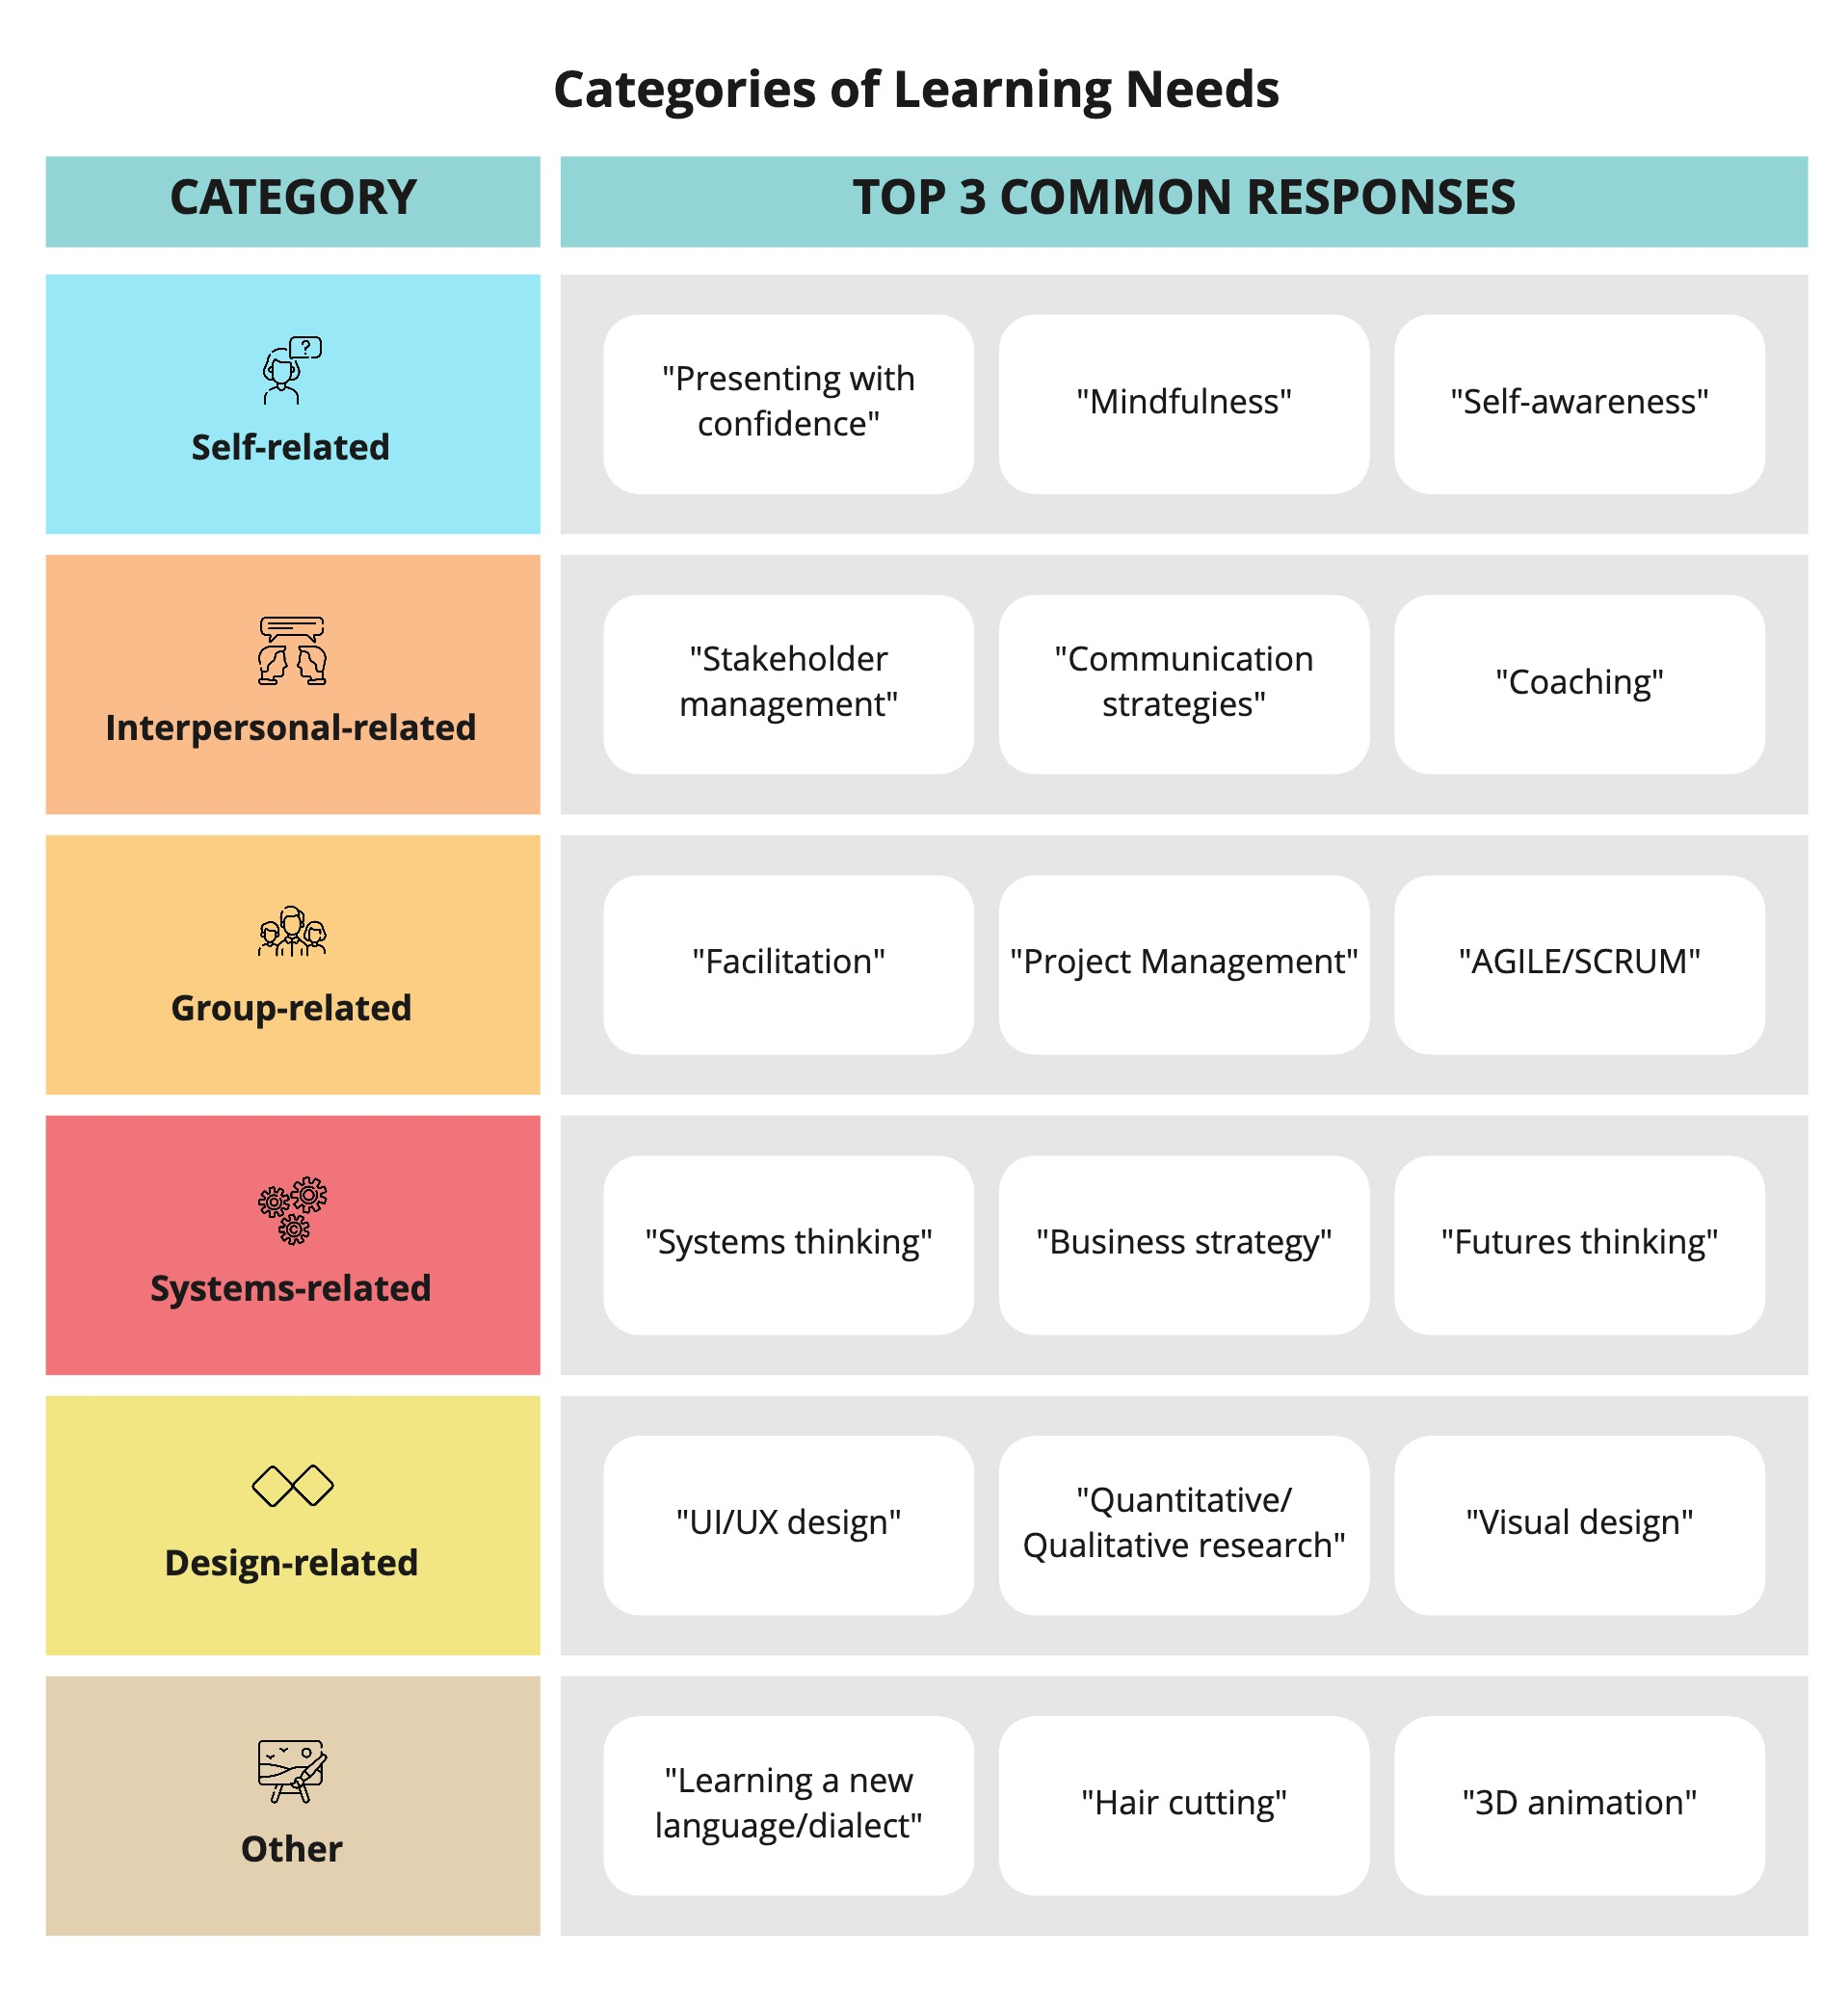 Categories of Learning Needs